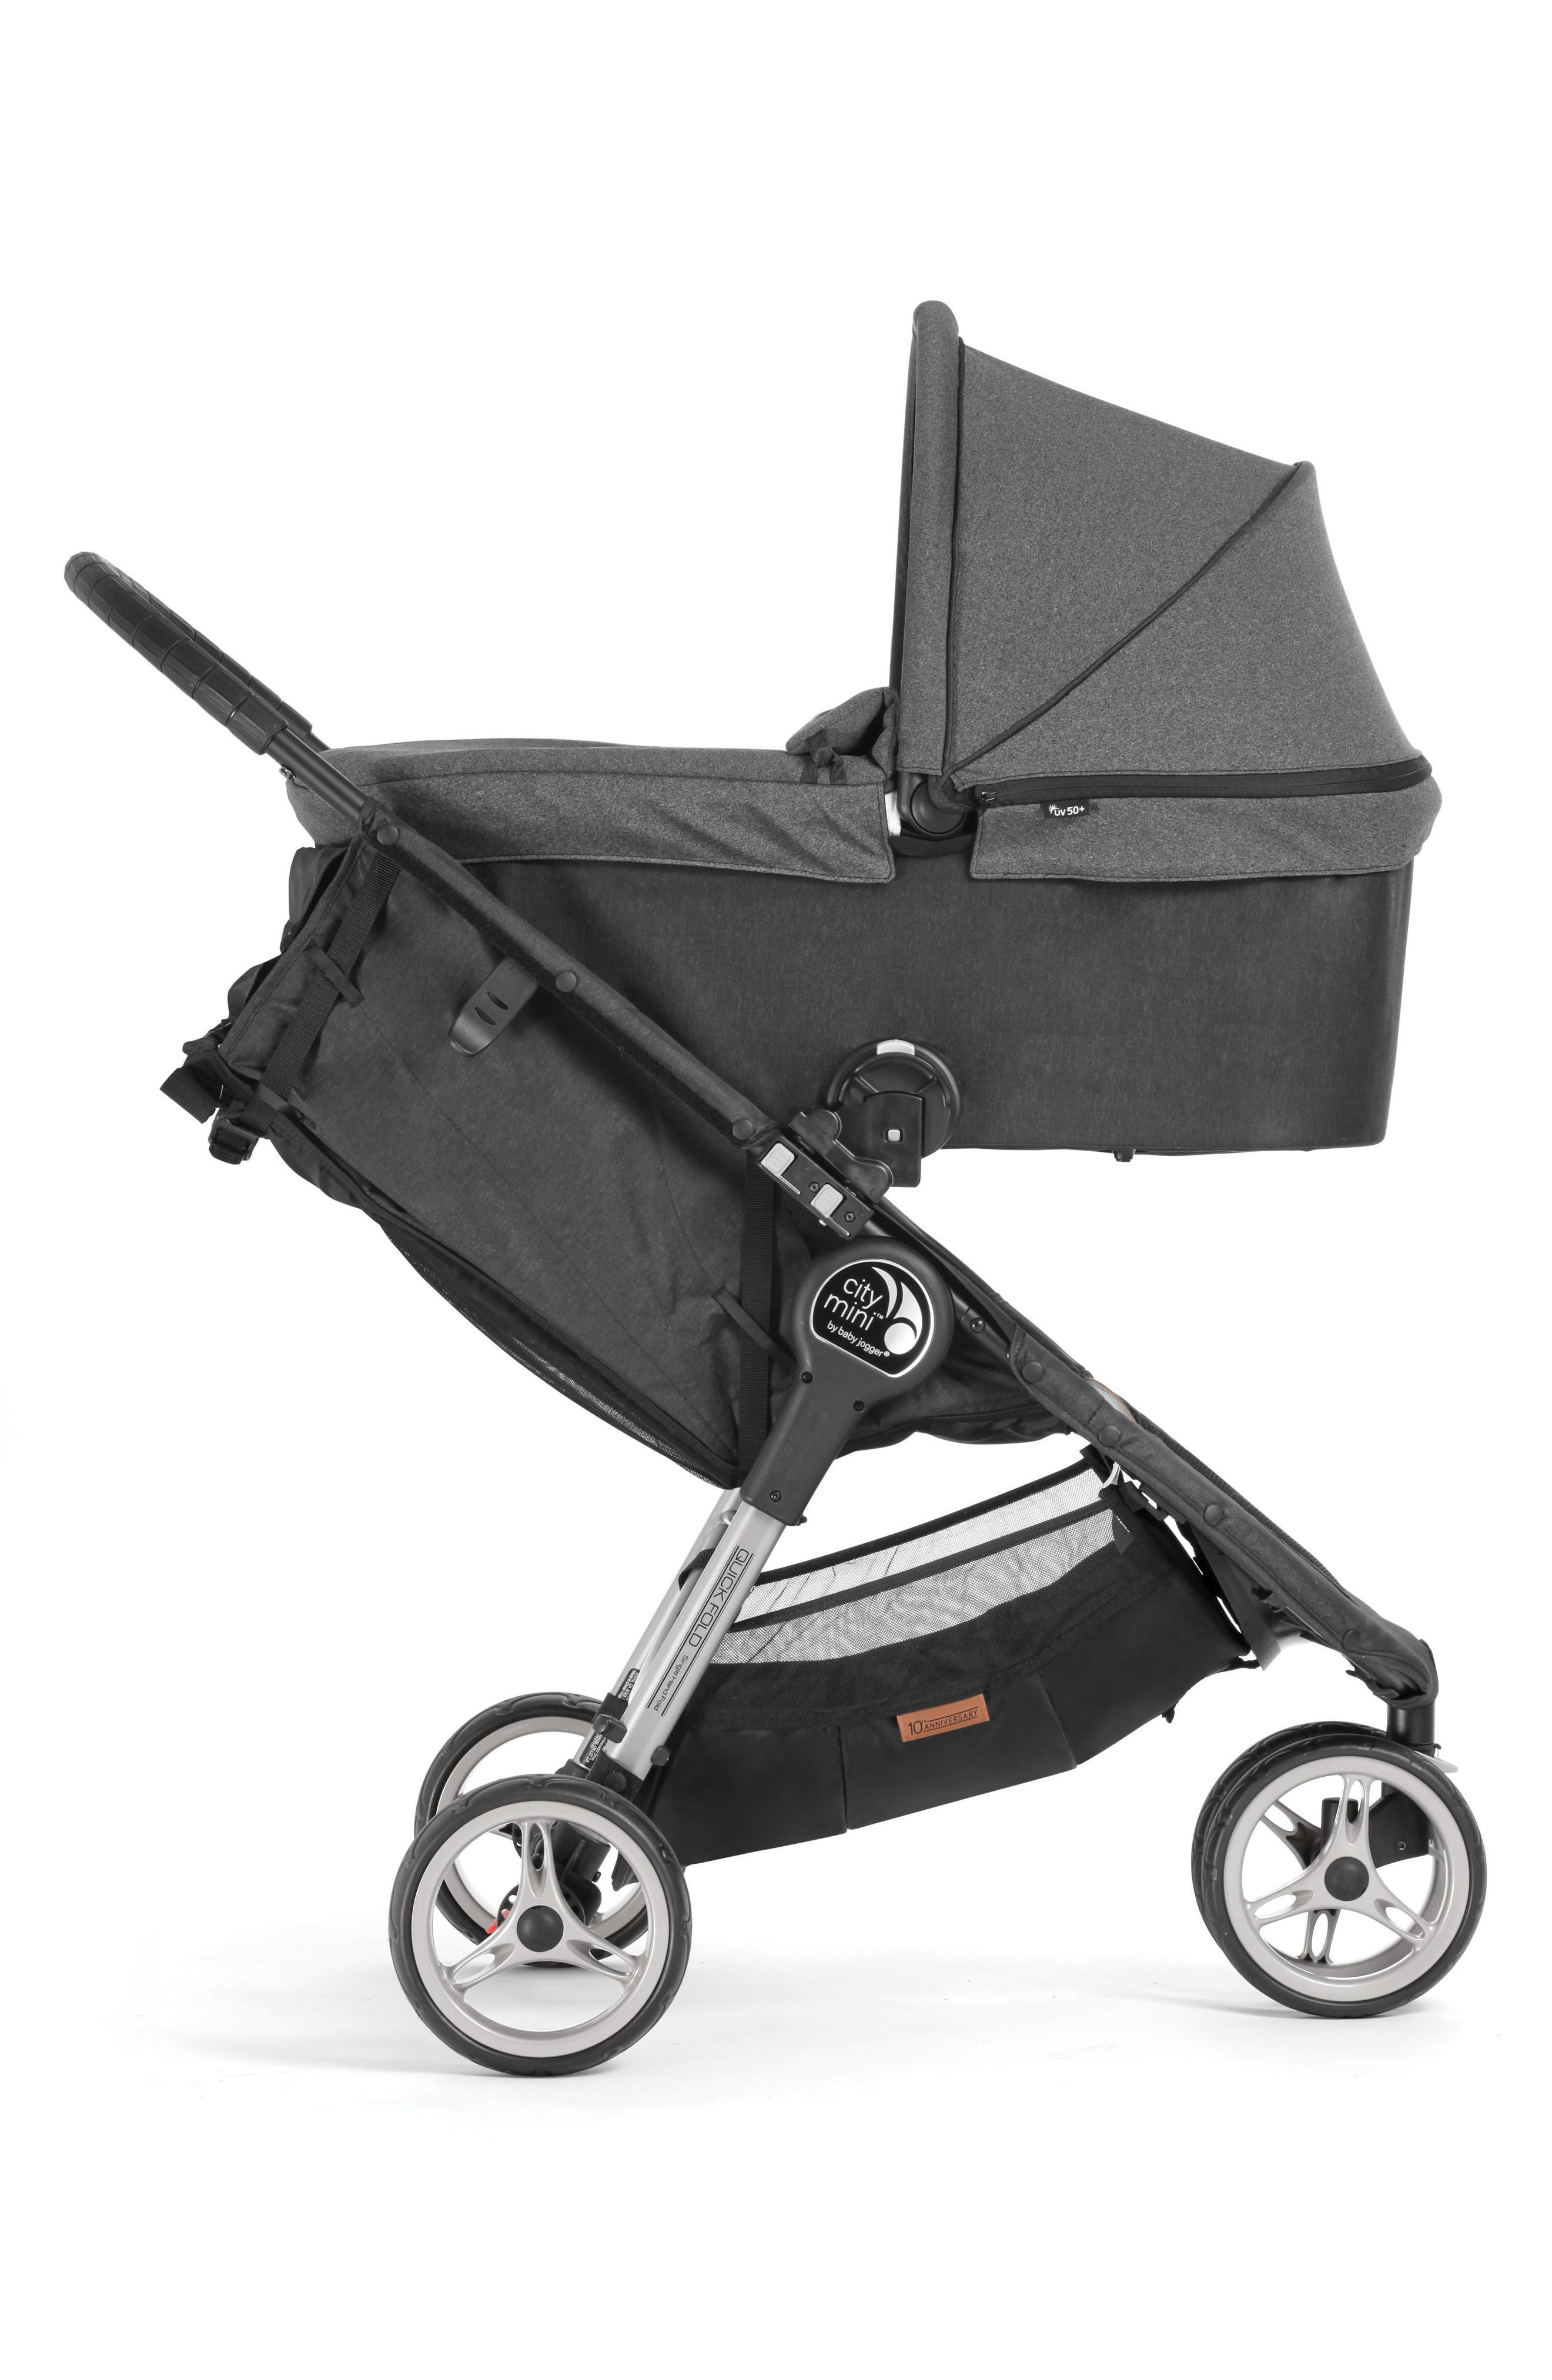 Deluxe Pram Converter Kit for City Mini<sup>®</sup> 2018 Special Edition 10-Year Anniversary All-Terrain Stroller,                             Alternate thumbnail 5, color,                             Grey